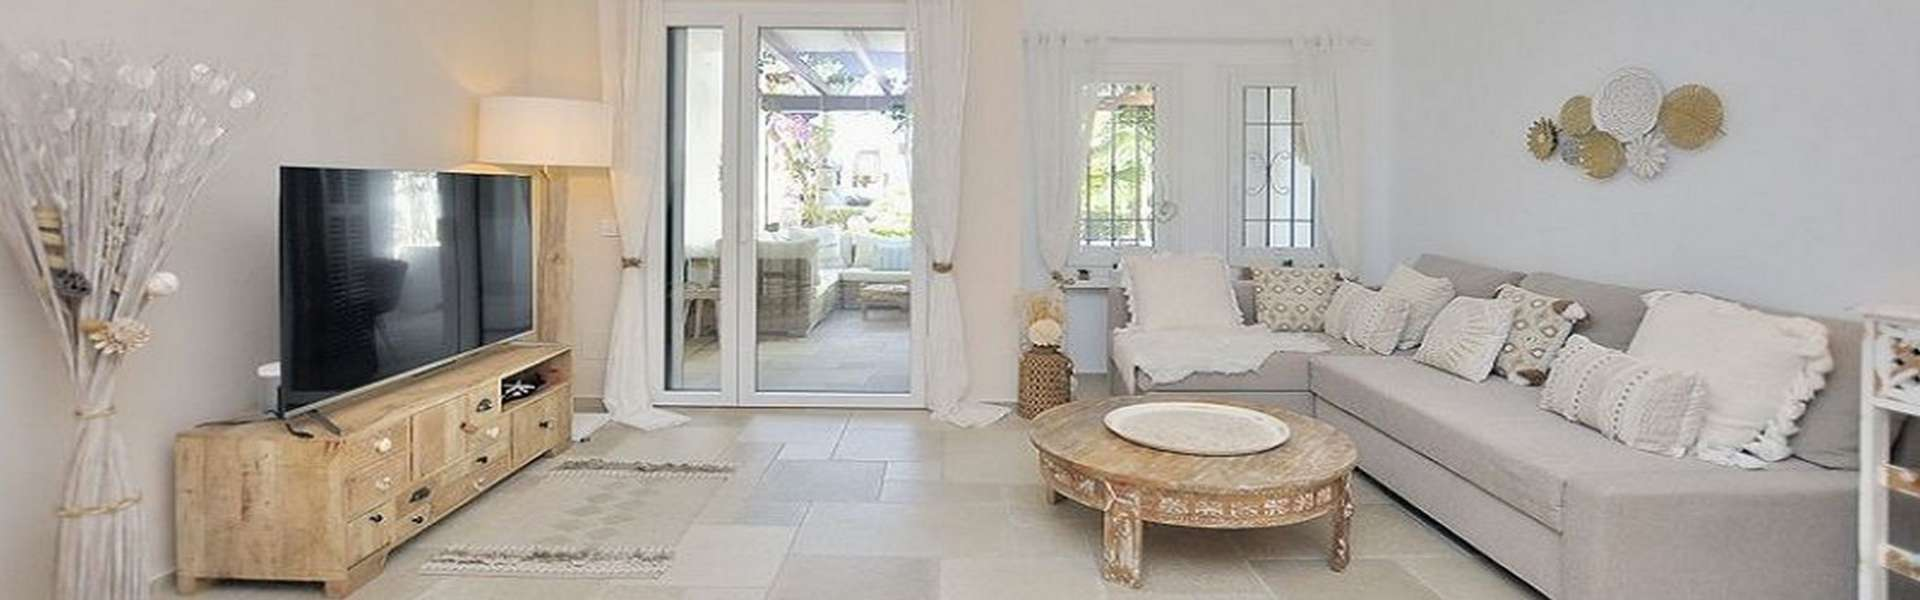 Modern and elegant first floor apartment in Cala d'Or